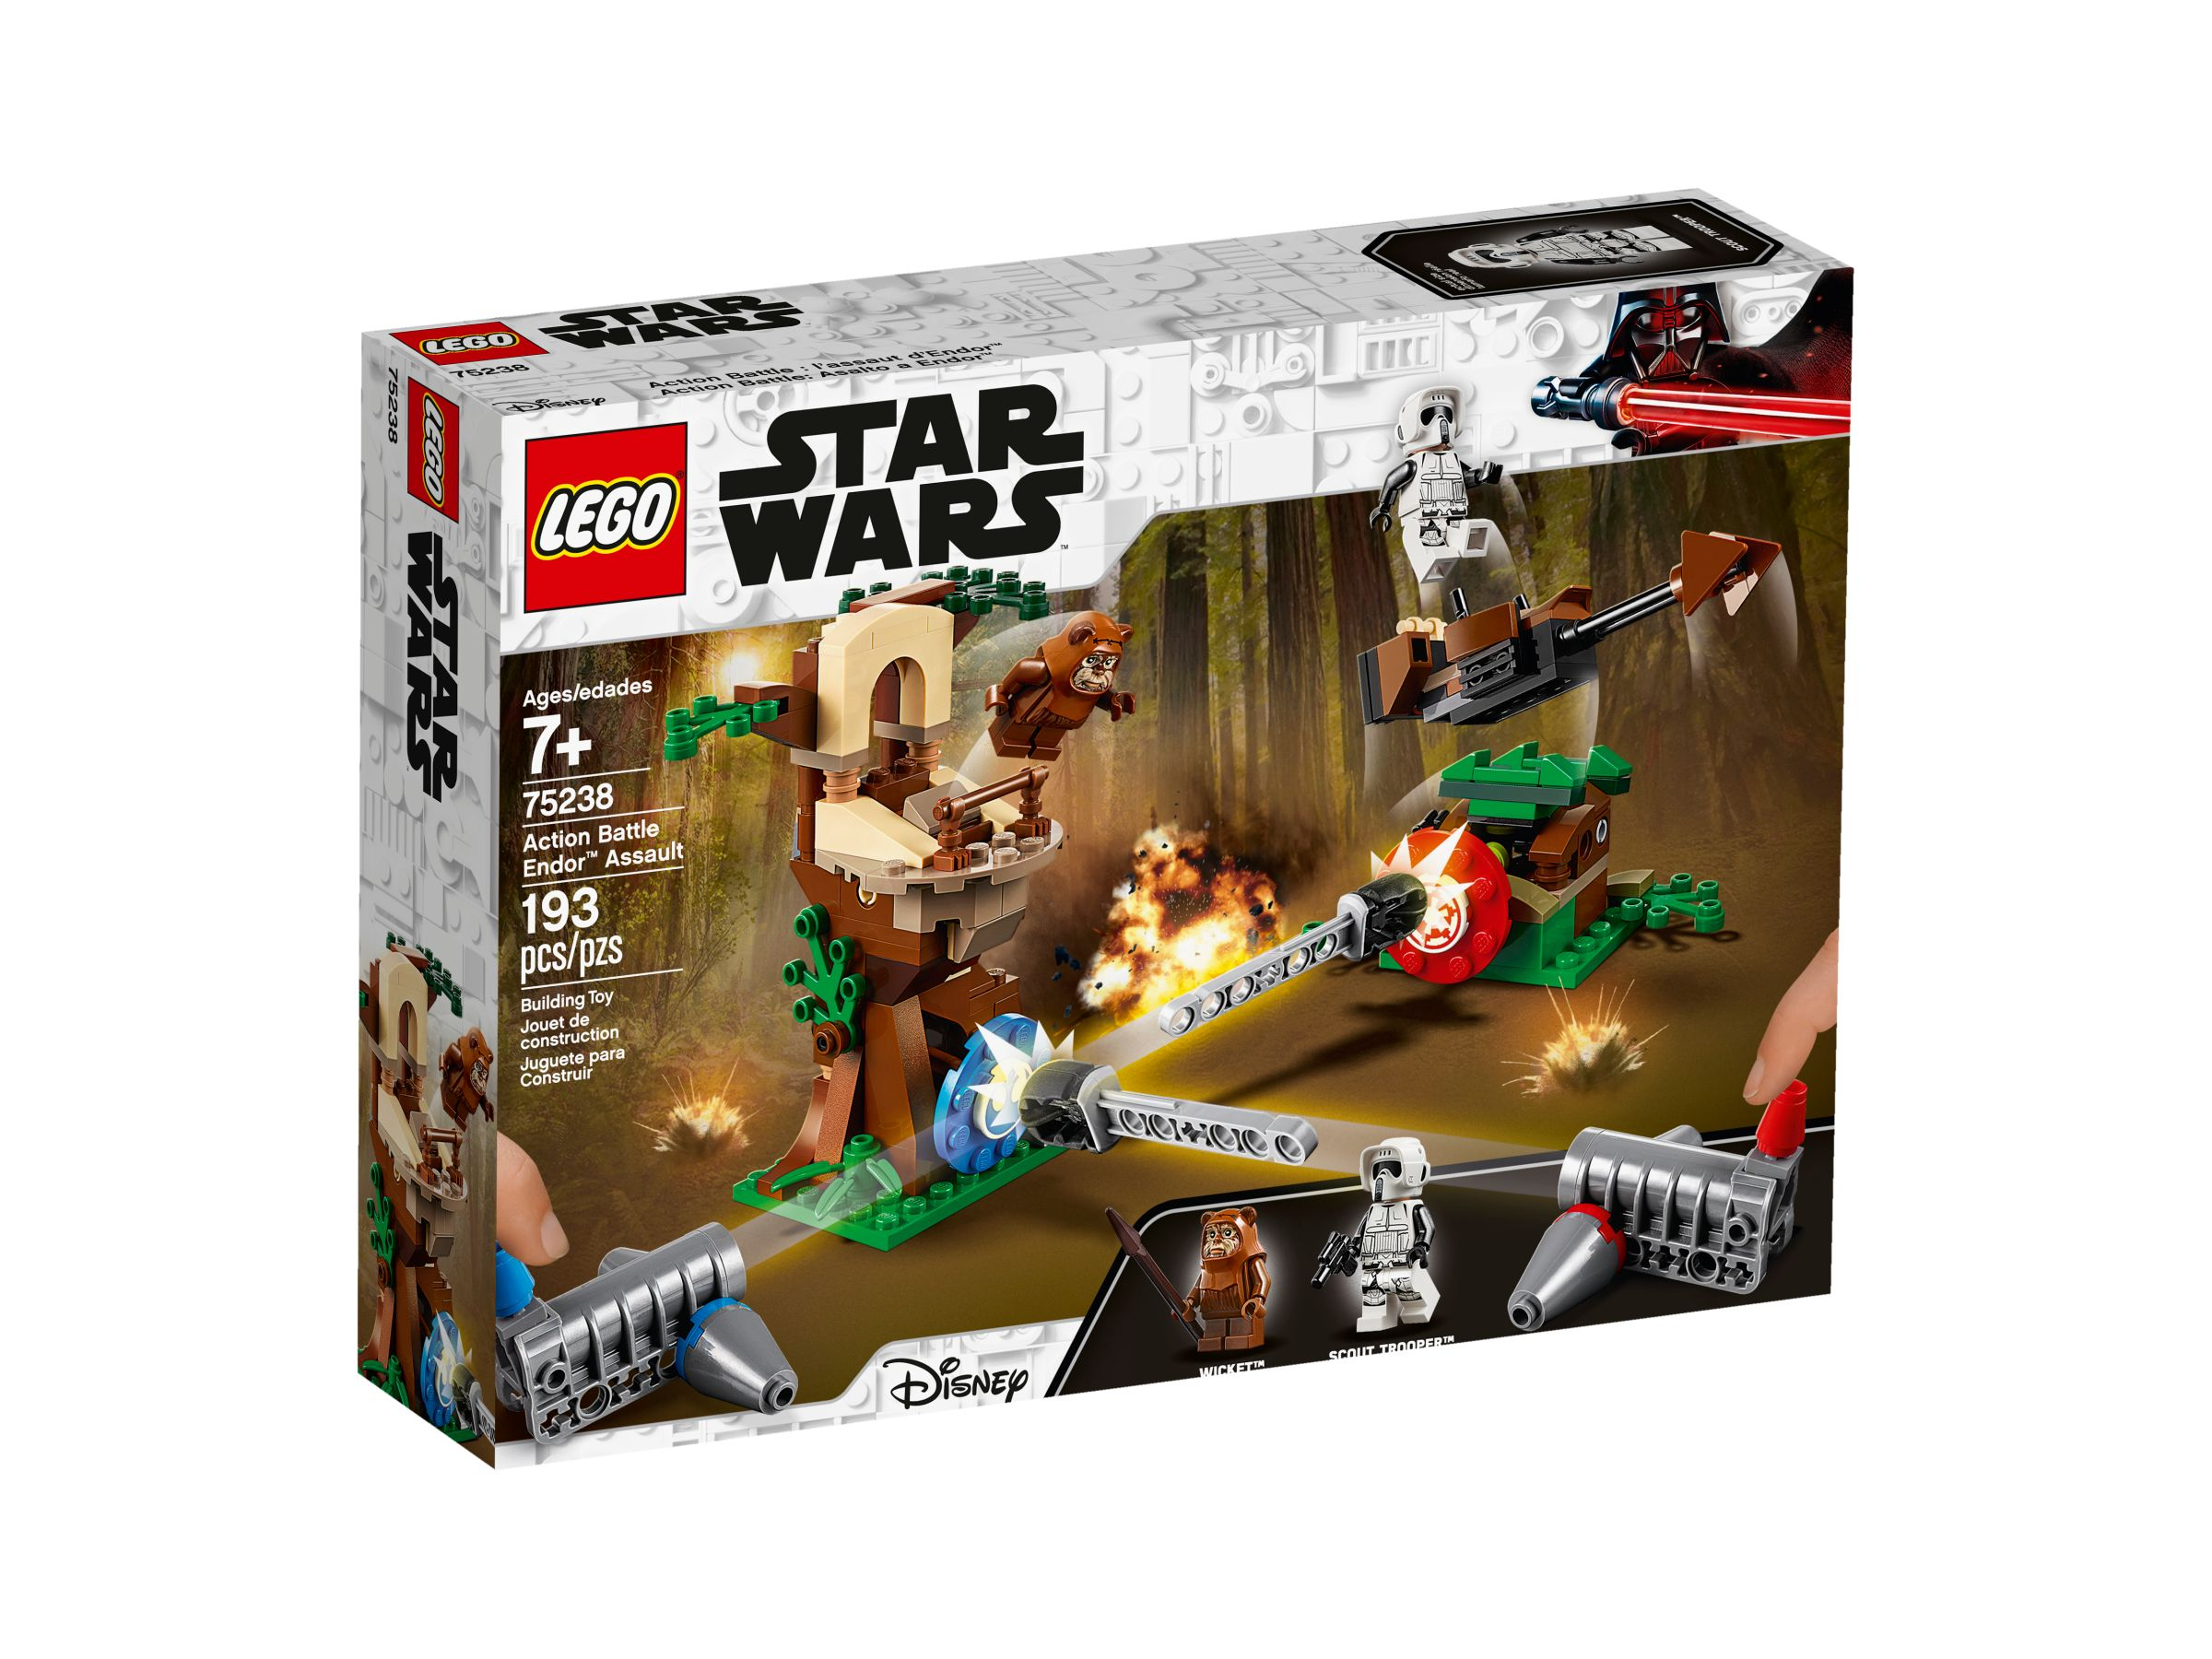 LEGO Star Wars 75238 Action Battle Endor™ Attacke LEGO_75238_alt1.jpg